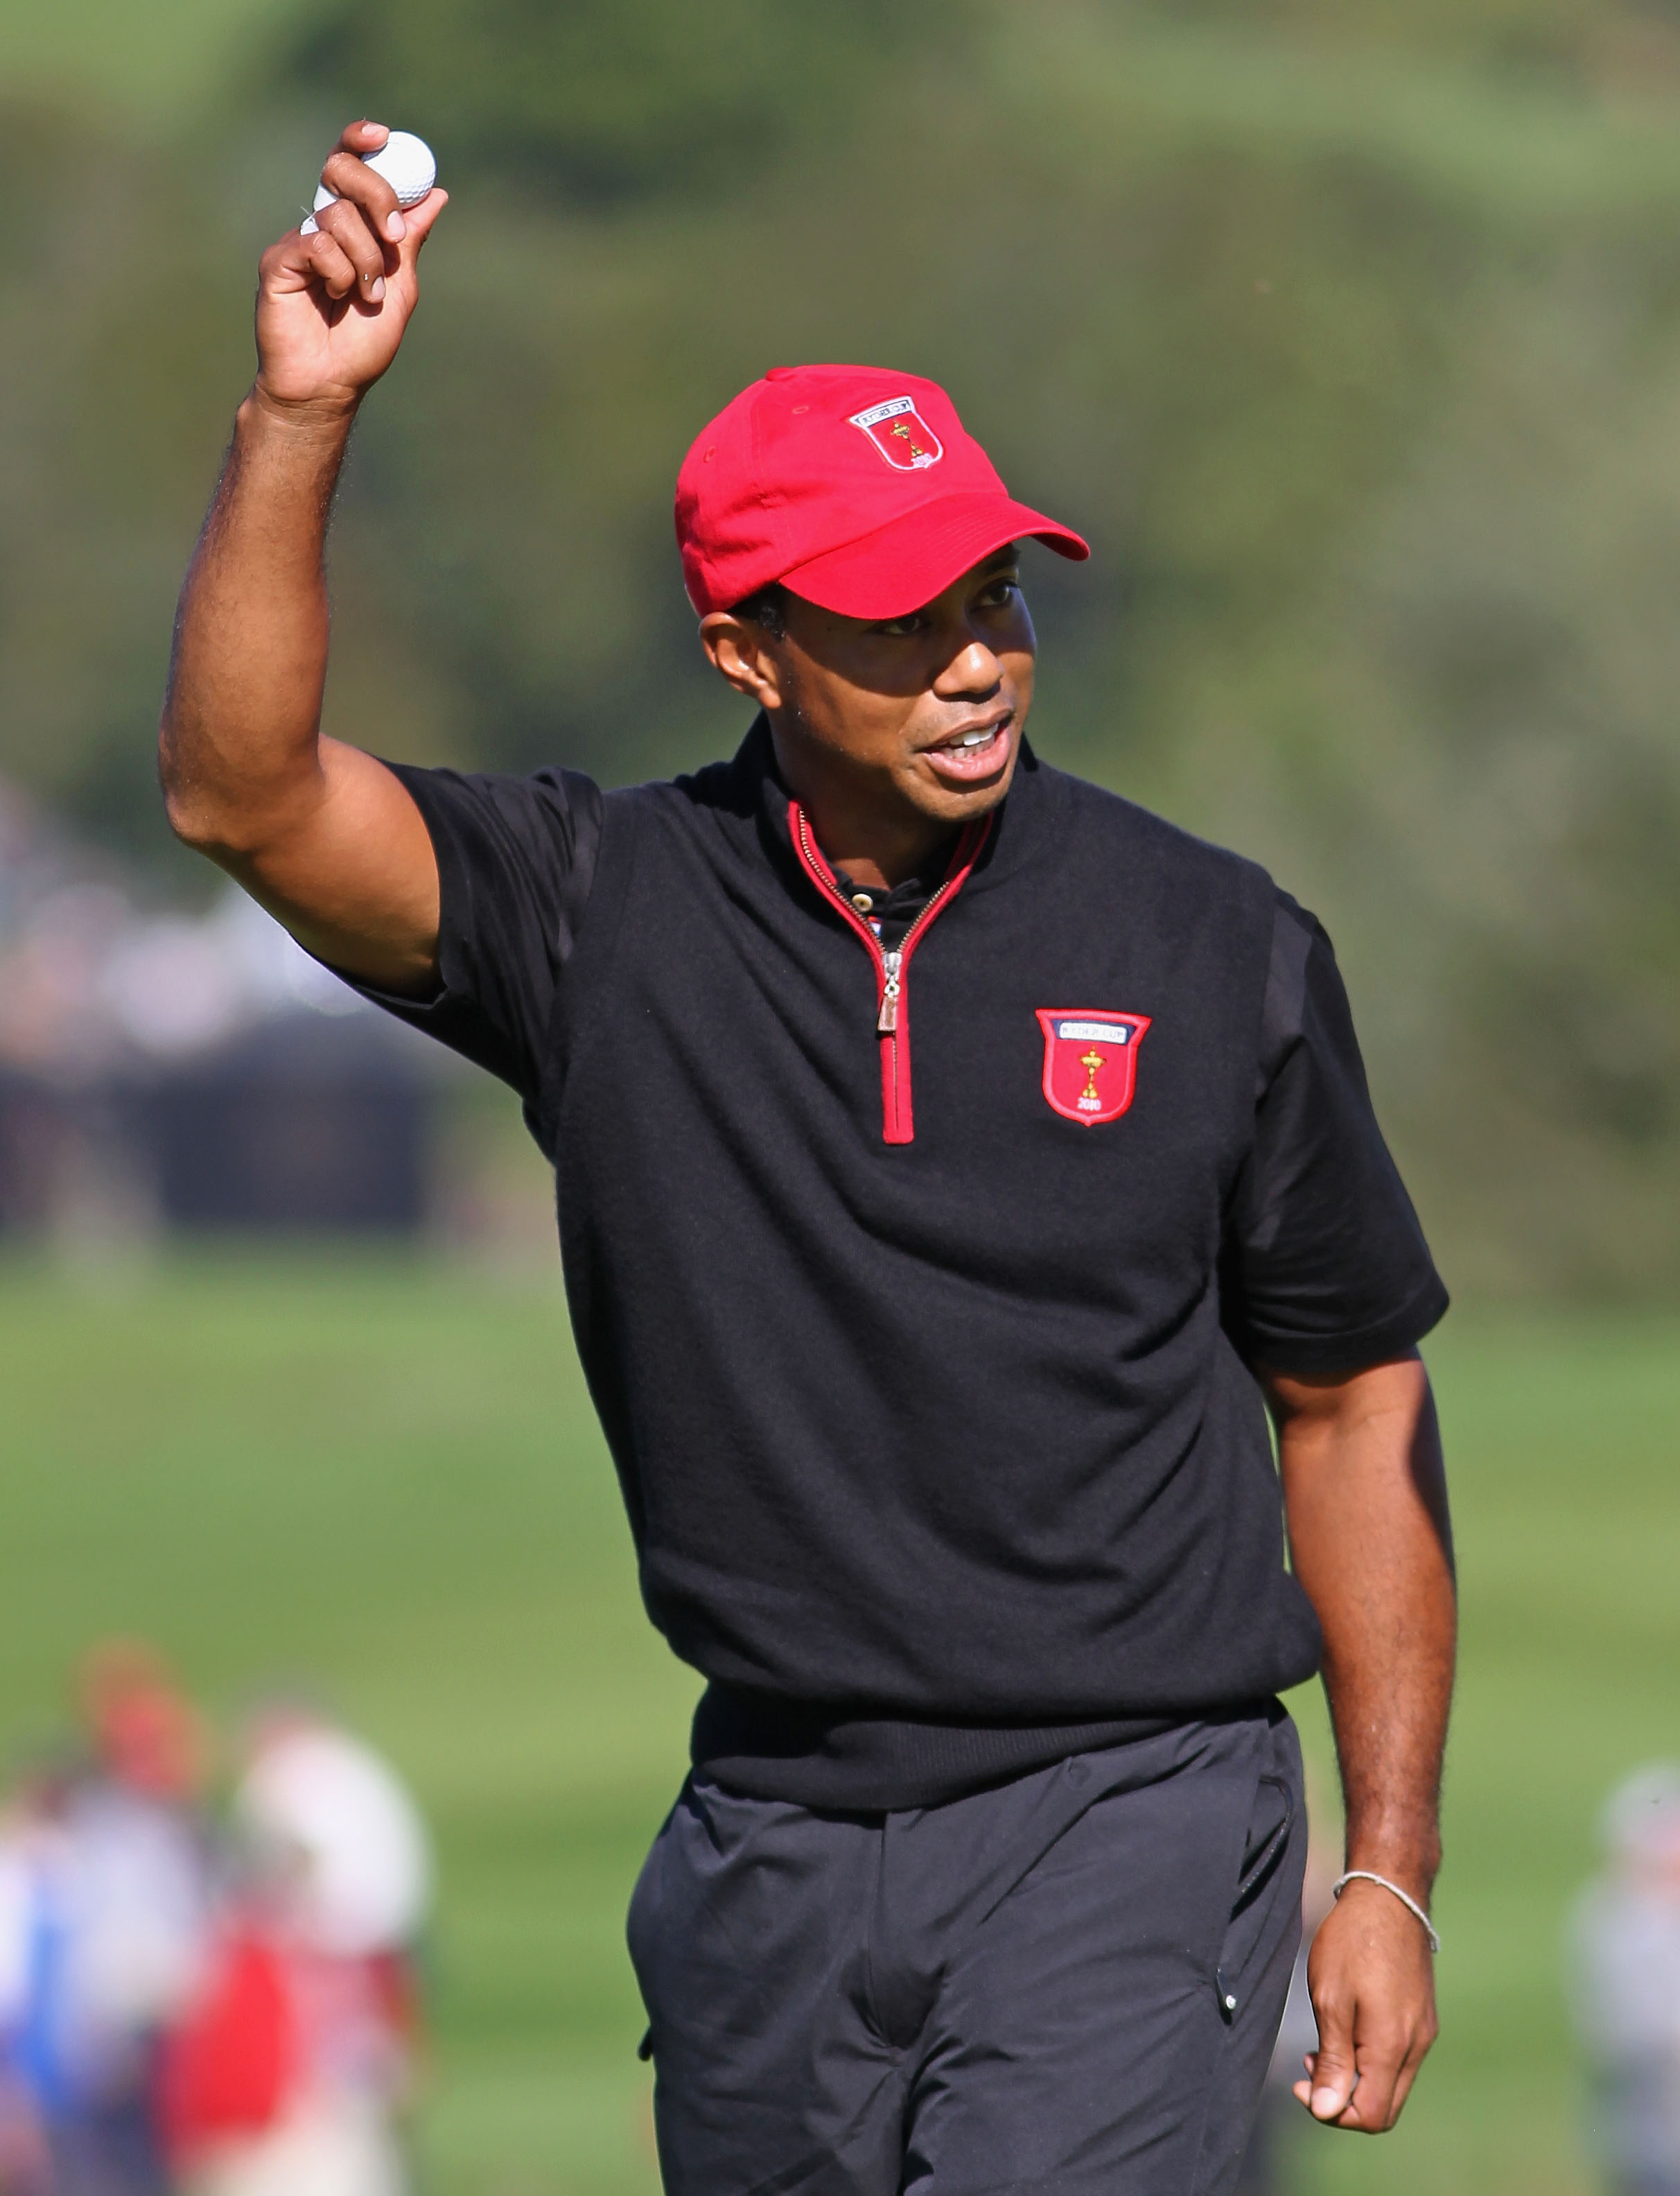 NEWPORT, WALES - OCTOBER 04:  Tiger Woods of the USA acknowledges the crowd after holing out for an eagle on the 12th hole in the singles matches during the 2010 Ryder Cup at the Celtic Manor Resort on October 4, 2010 in Newport, Wales.  (Photo by Jamie S